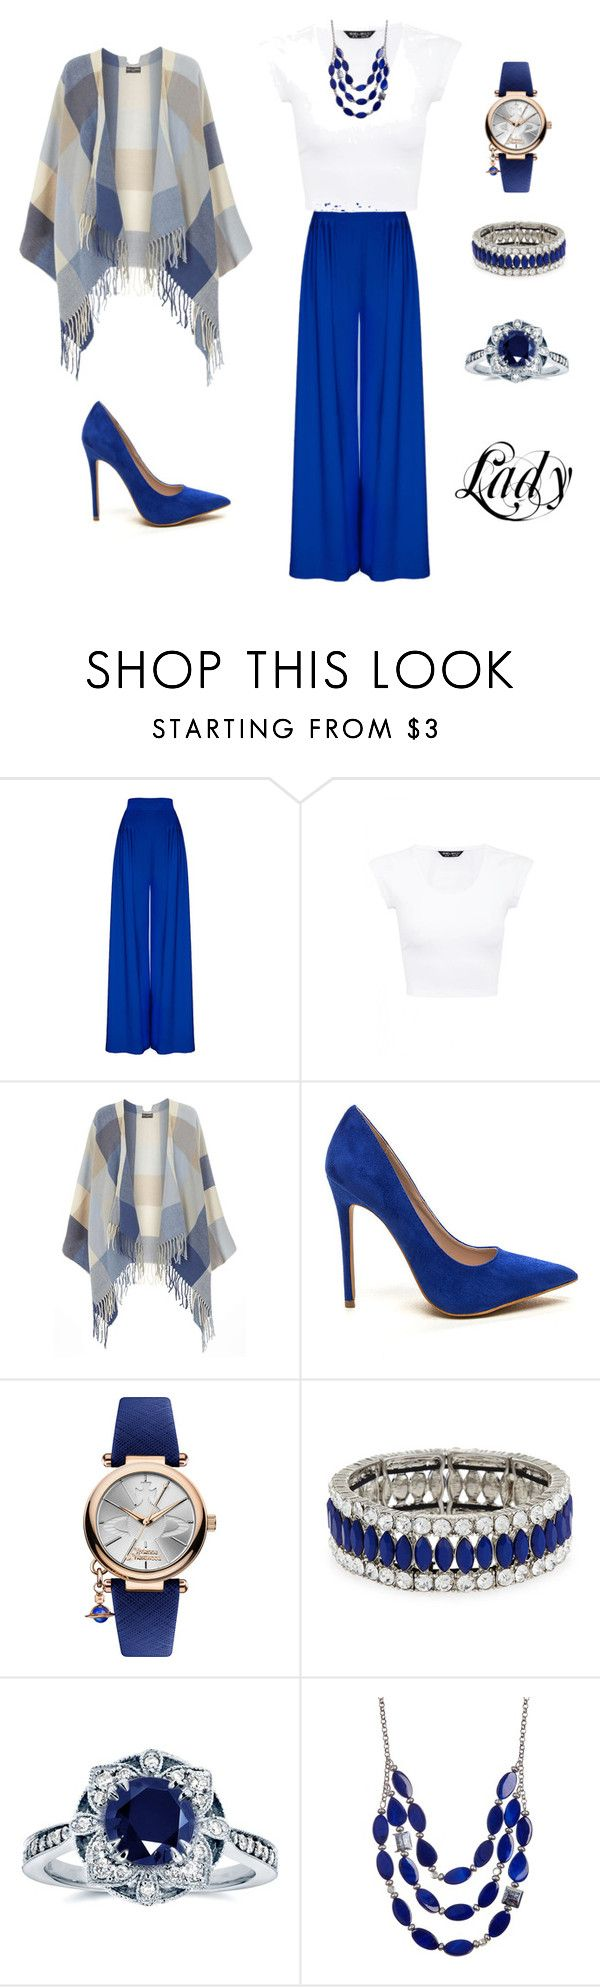 """""""Lady personality styling for rectangle body shape"""" by monicazelin on Polyvore featuring Dorothy Perkins, Vivienne Westwood, Kenneth Jay Lane, Kobelli and Kenneth Cole"""